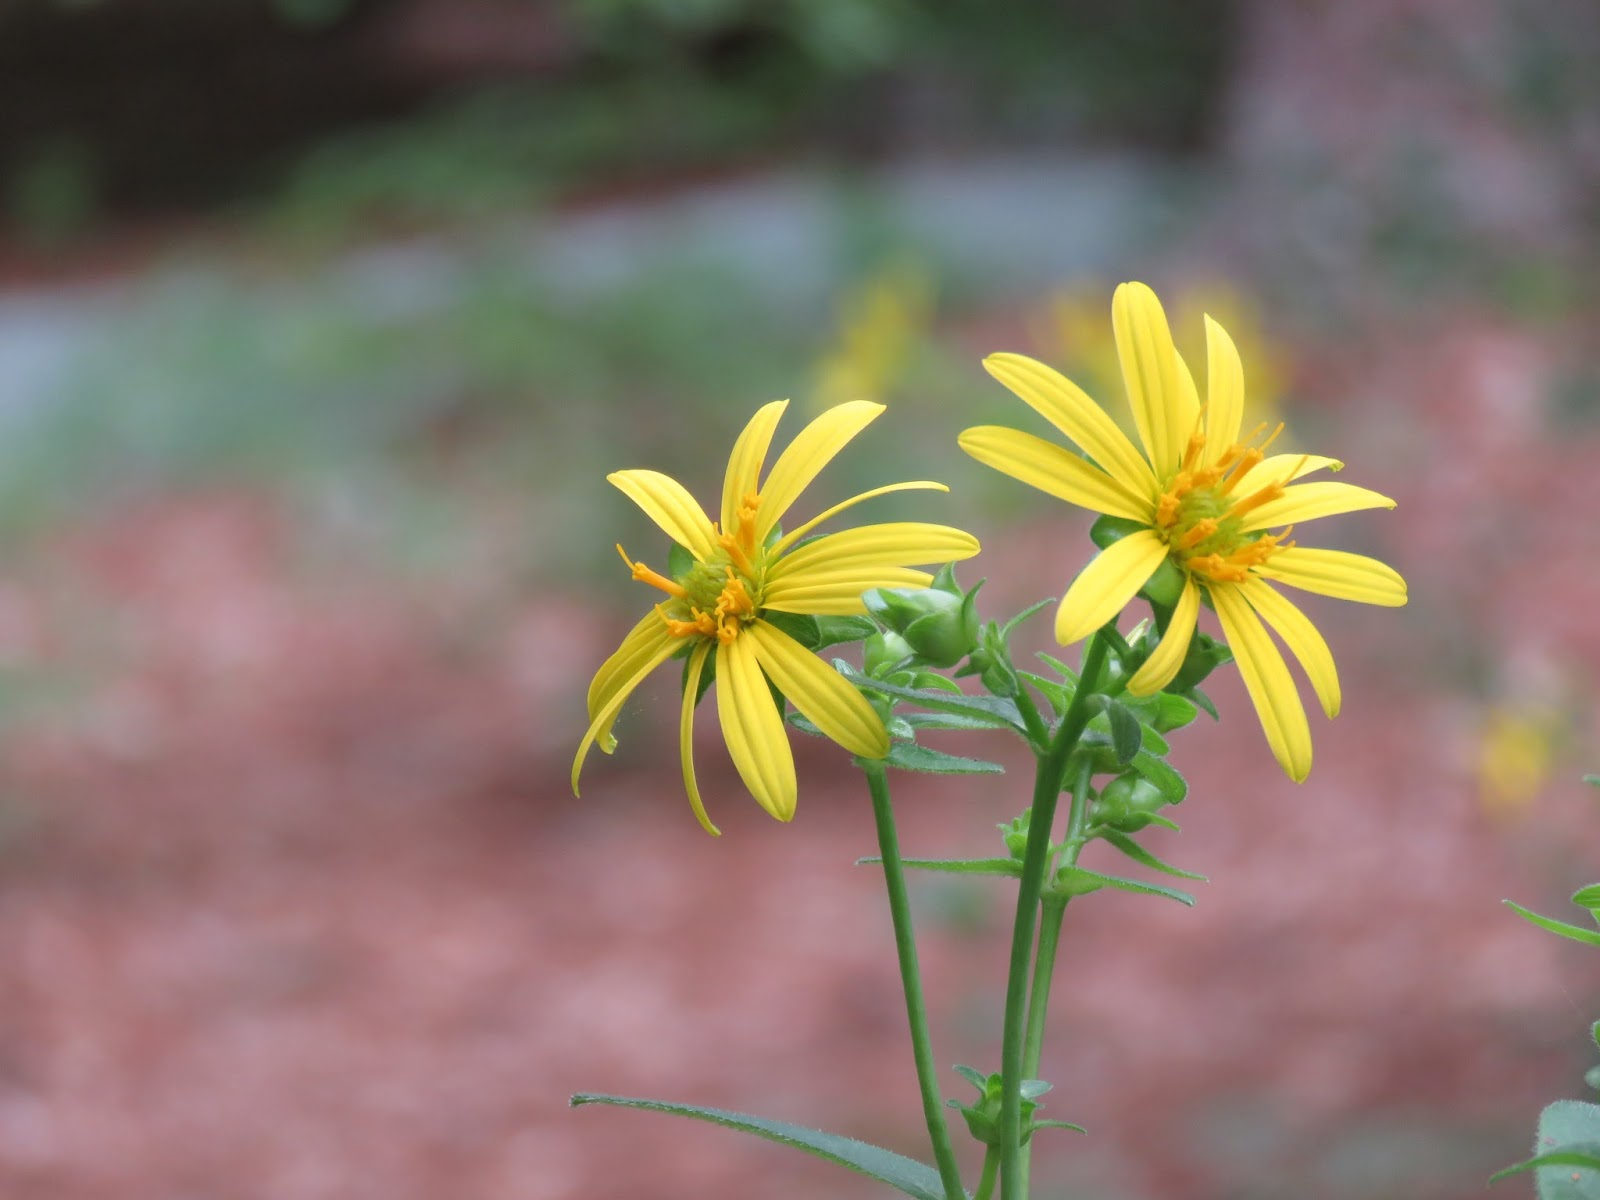 The wildlife garden in the h l blomquist garden of native plants - Starry Rosinweed Photo By Sue Lannon